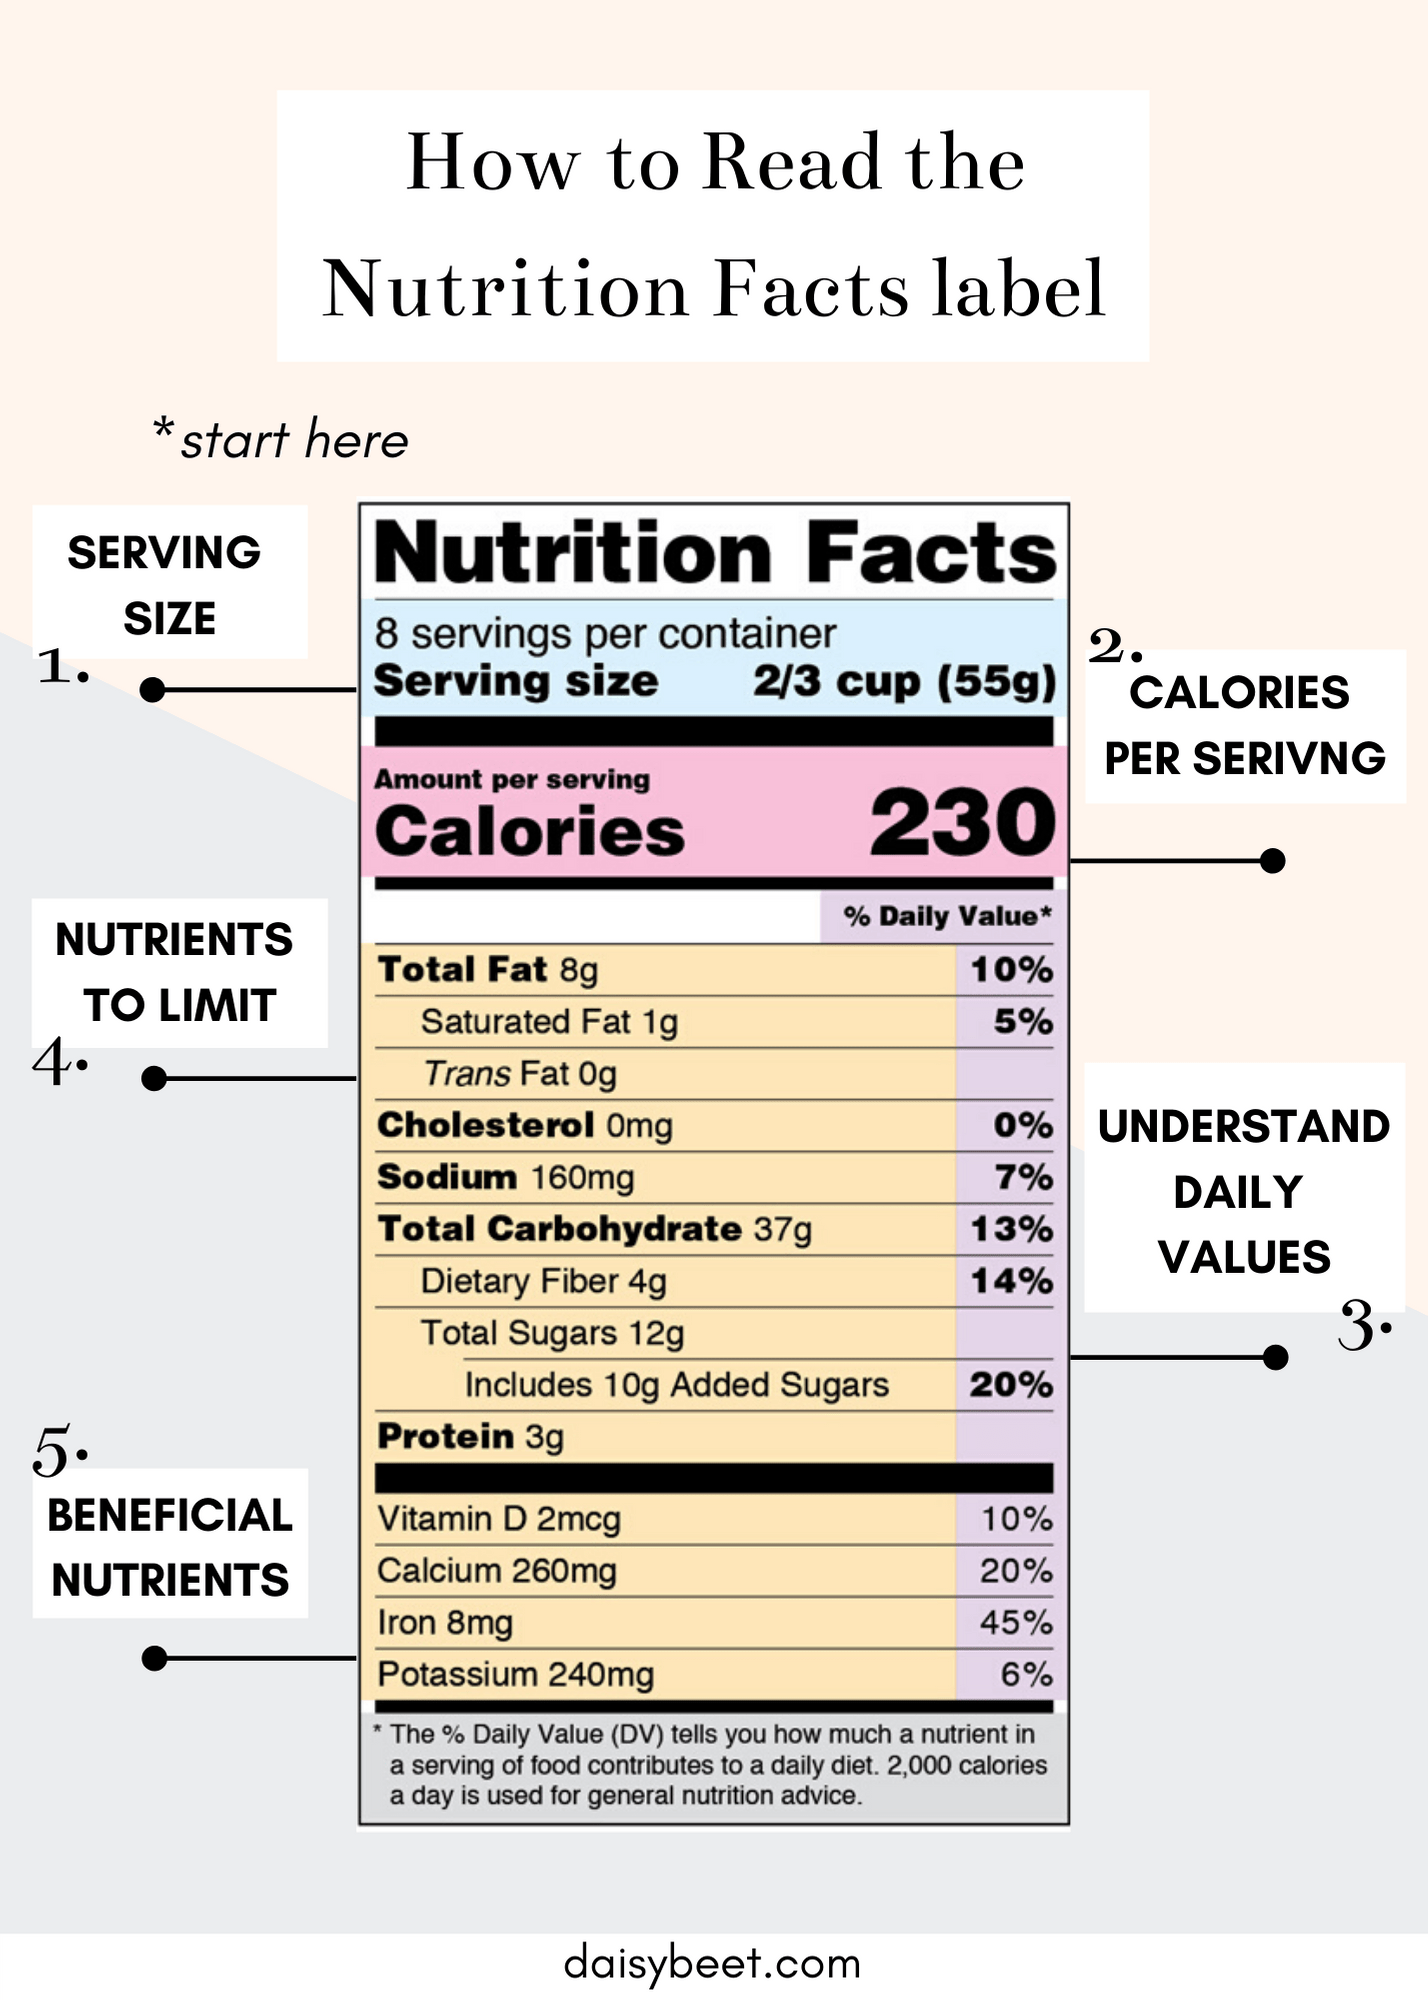 How To Read The Nutrition Facts Label Daisybeet